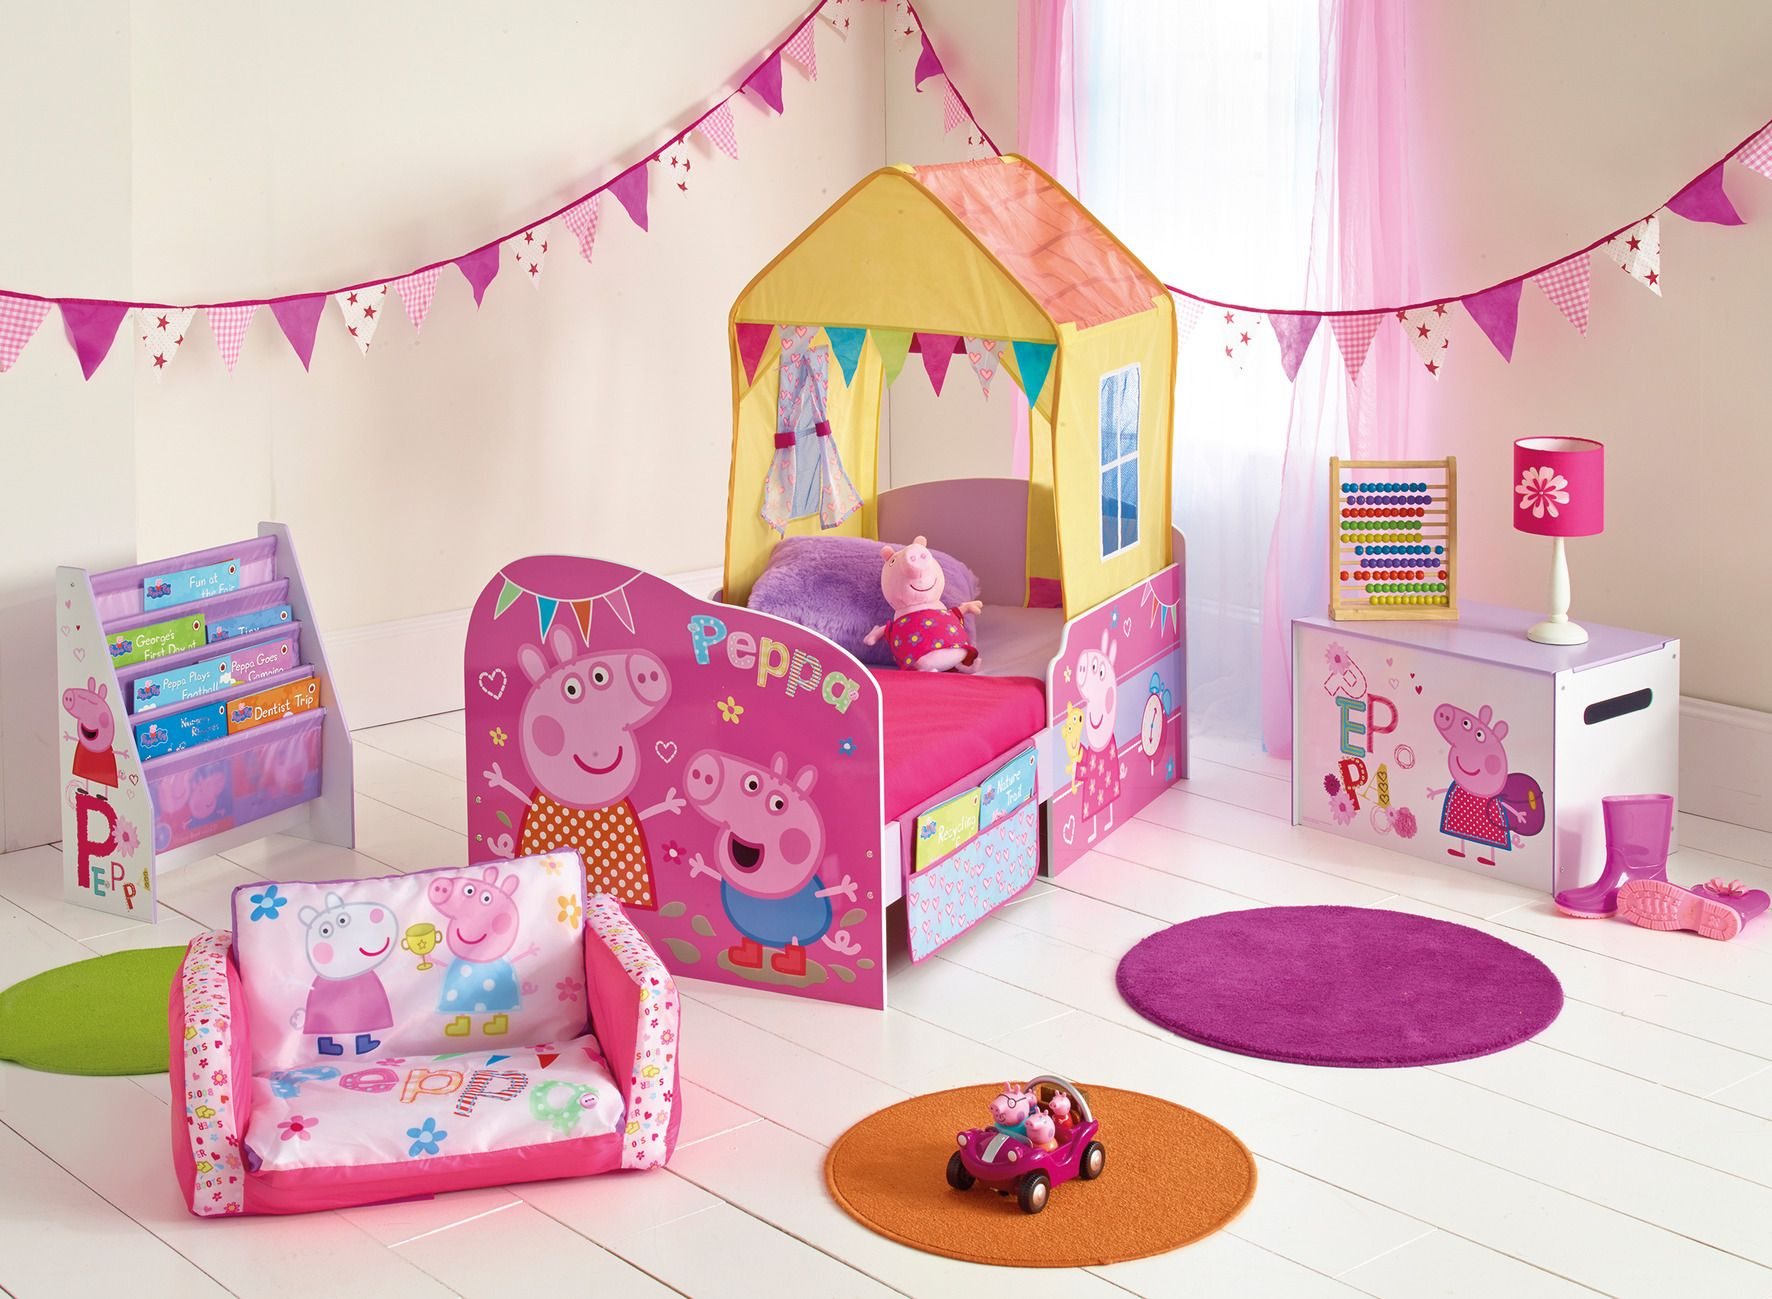 Peppa Pig Bedroom Furniture Perfect For Preschoolers Fill Their Room With Friends With The